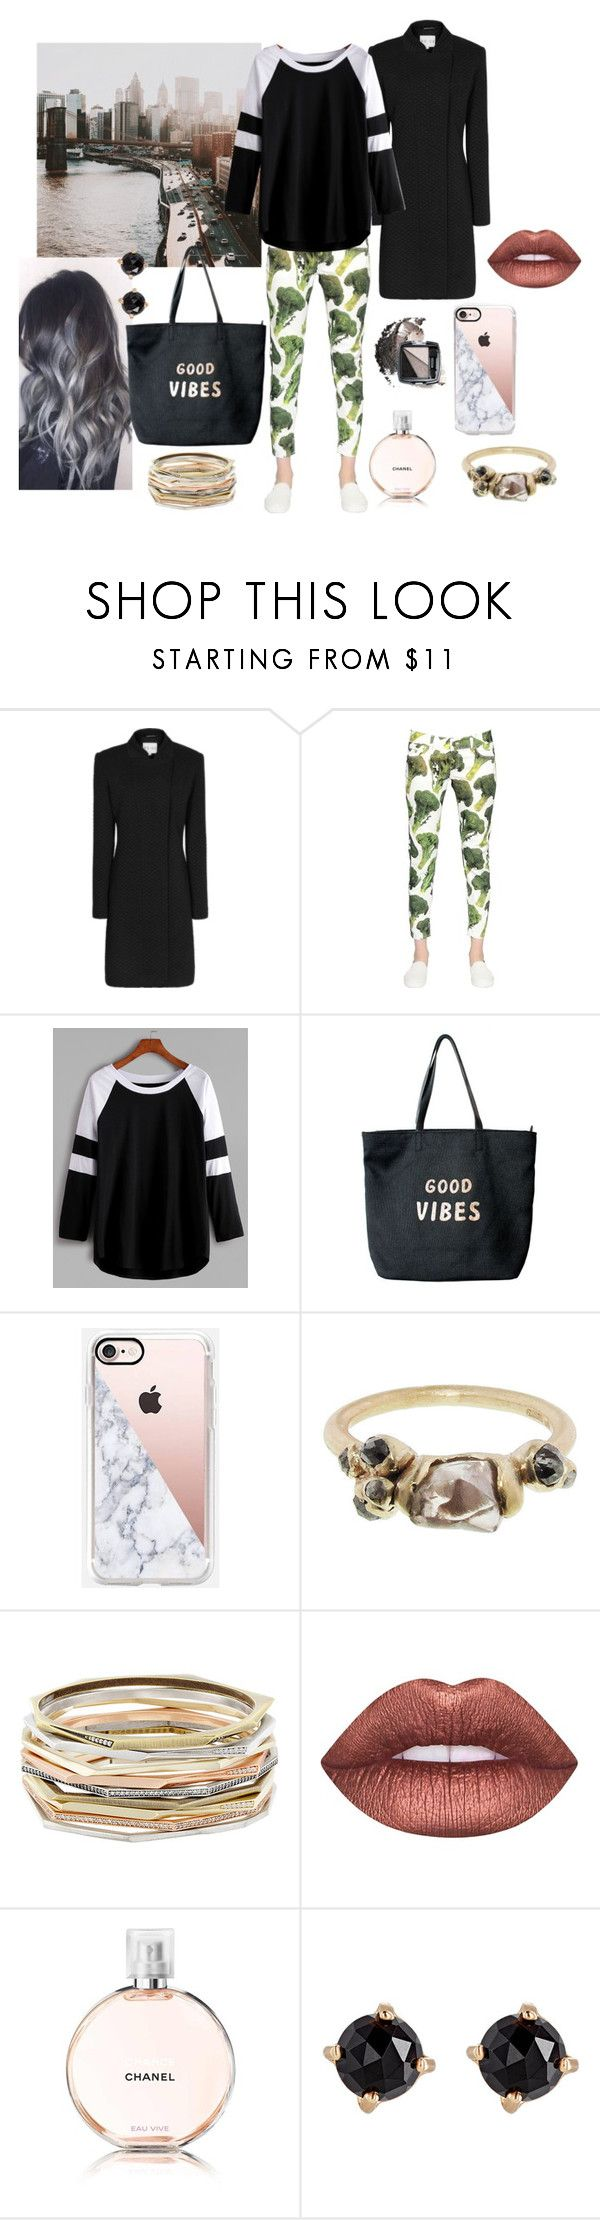 """Fall in New York City"" by ivorylineslead ❤ liked on Polyvore featuring Reiss, Sangue, Venus, Casetify, Ruth Tomlinson, Kendra Scott, Lime Crime, Chanel, Irene Neuwirth and Avon"